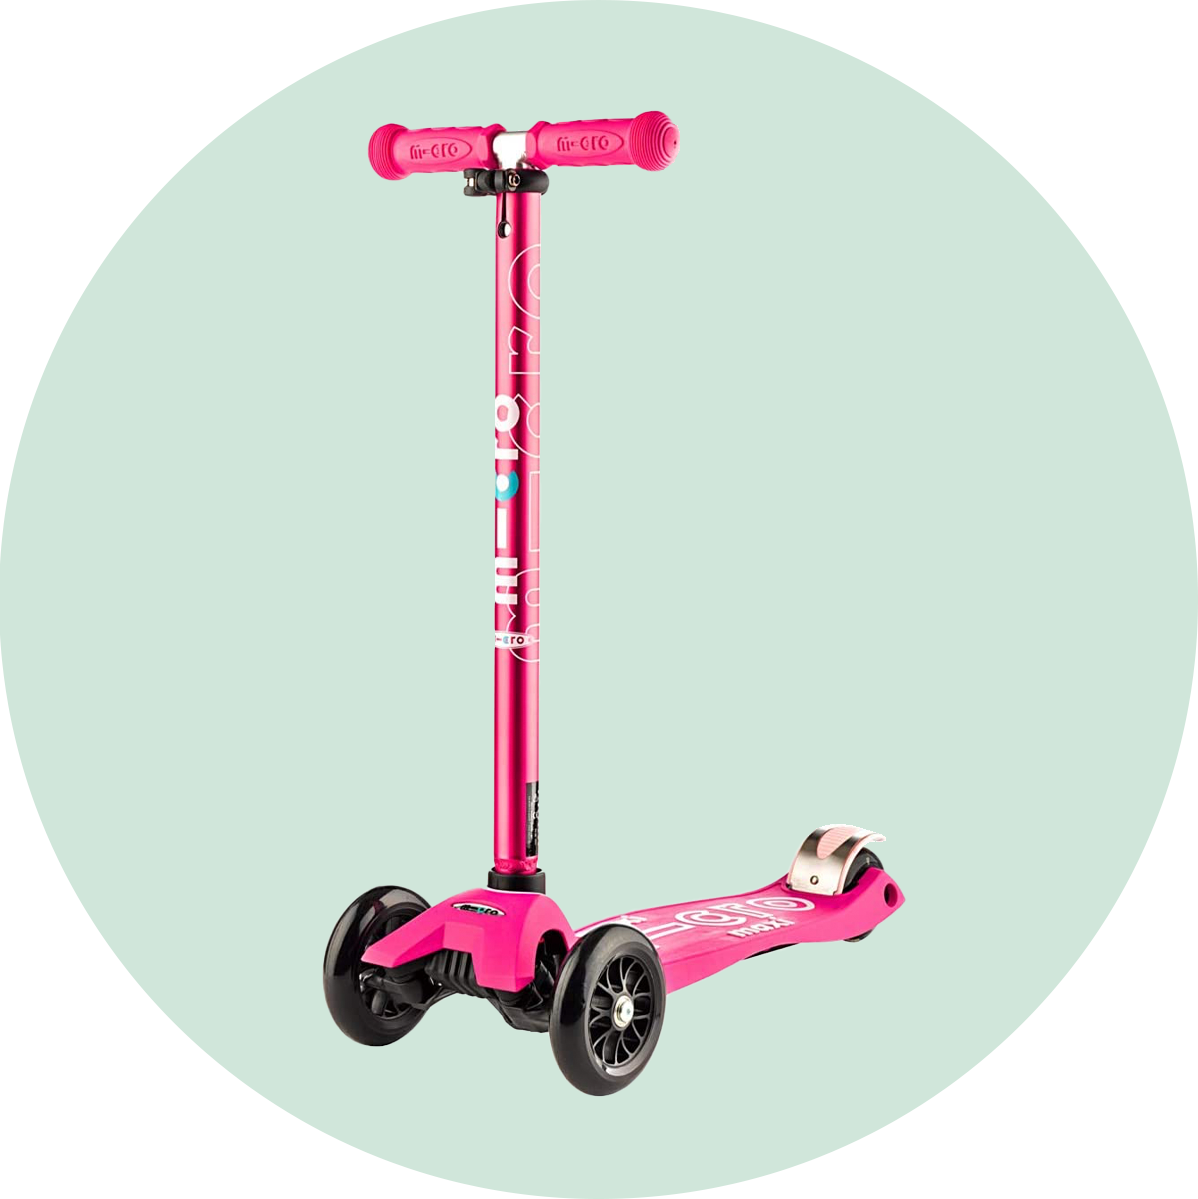 Maxi Deluxe Micro Scooter